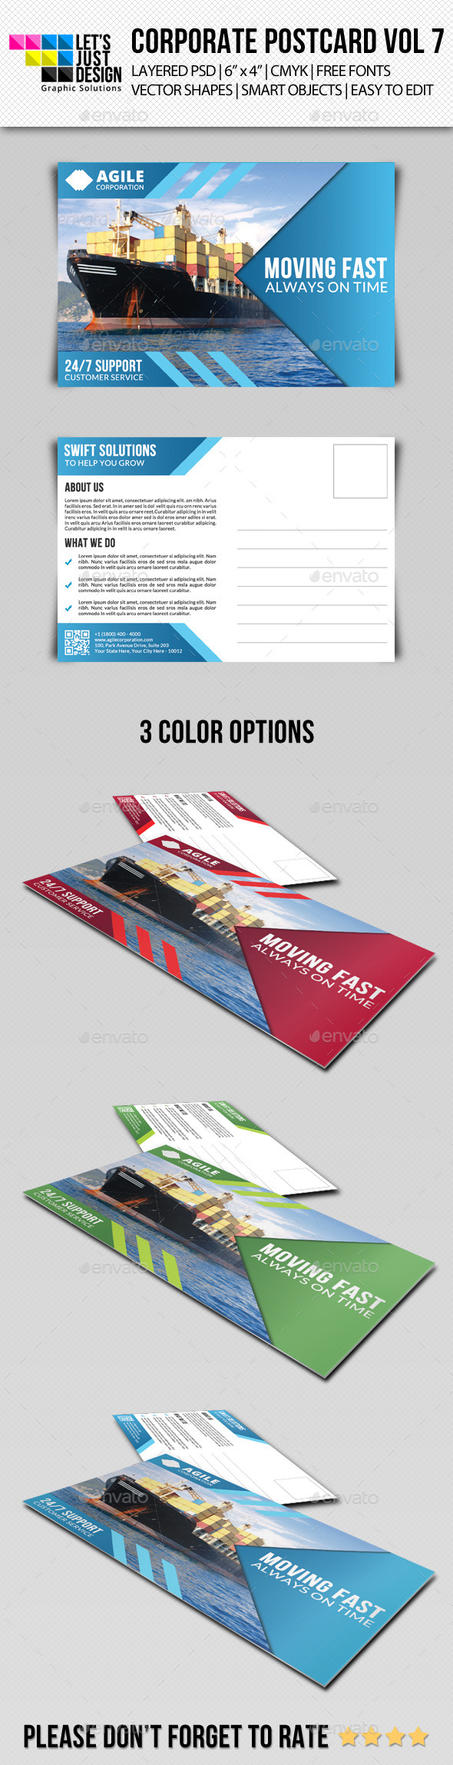 Corporate Postcard Template Vol 7 by jasonmendes